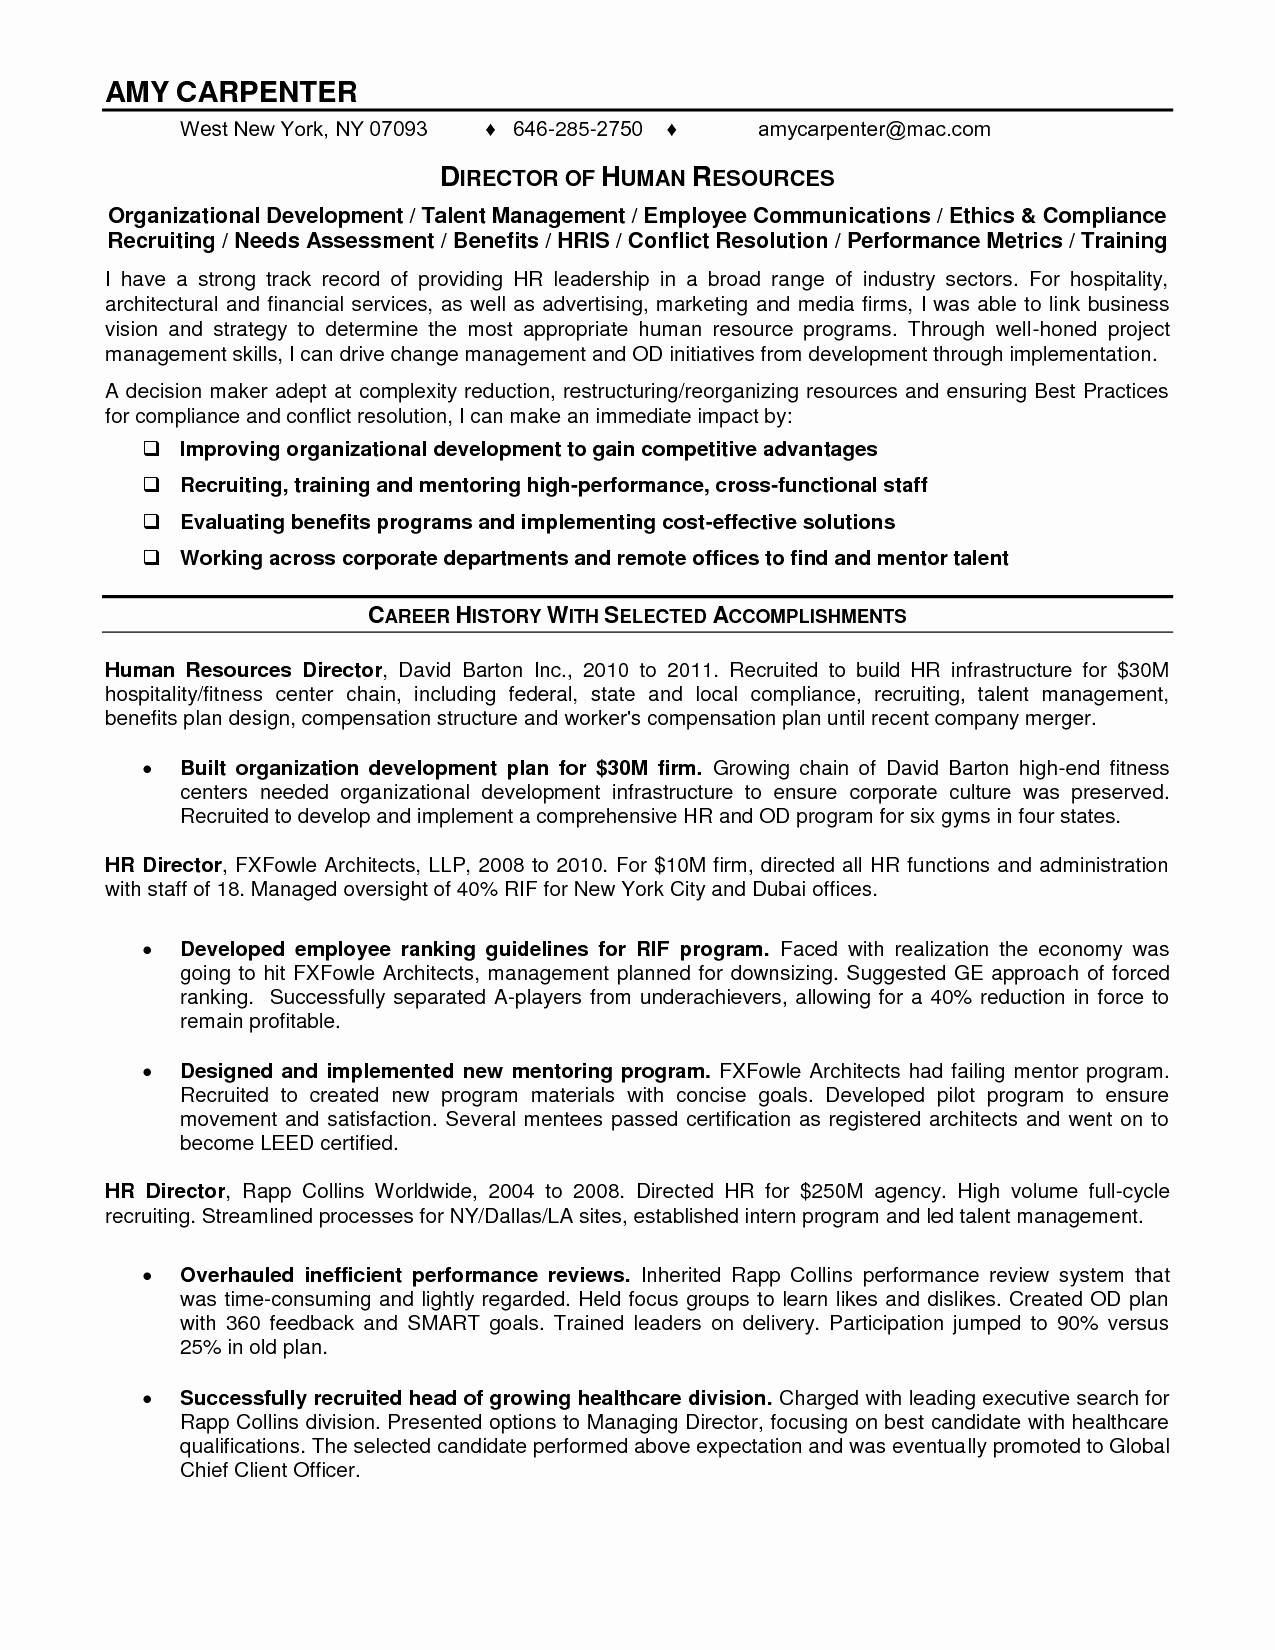 Manager Cover Letter Template - Business Expression Interest Letter Template New Dear Hiring